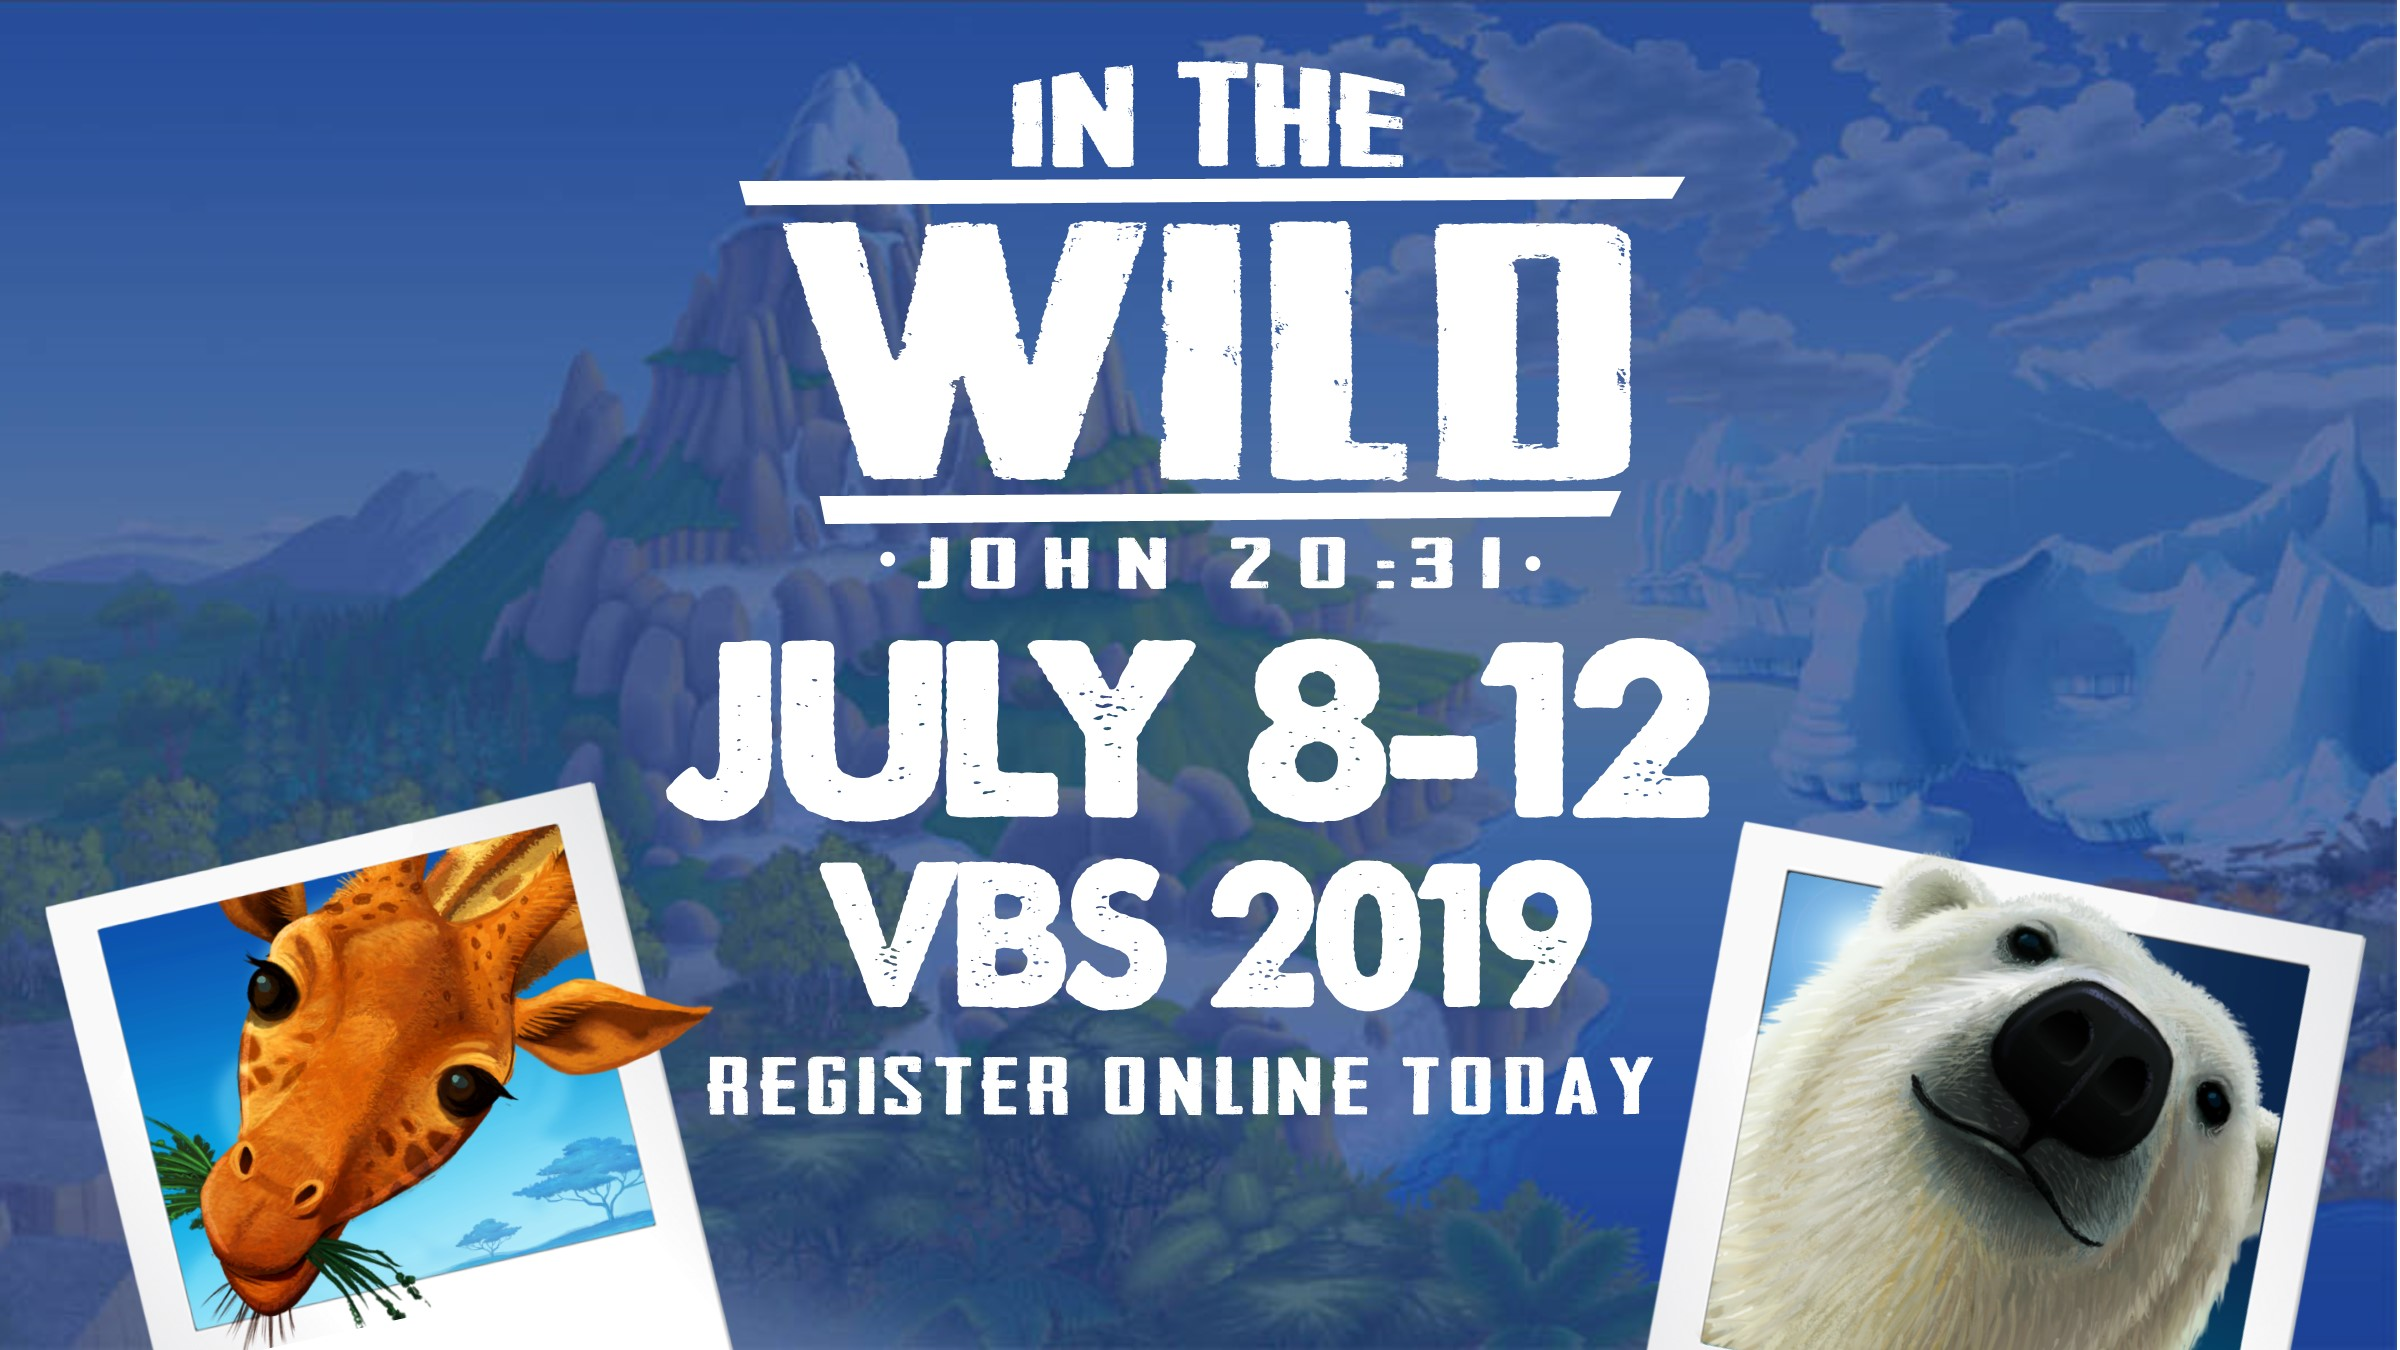 VBS 2019 Announcement Slide image